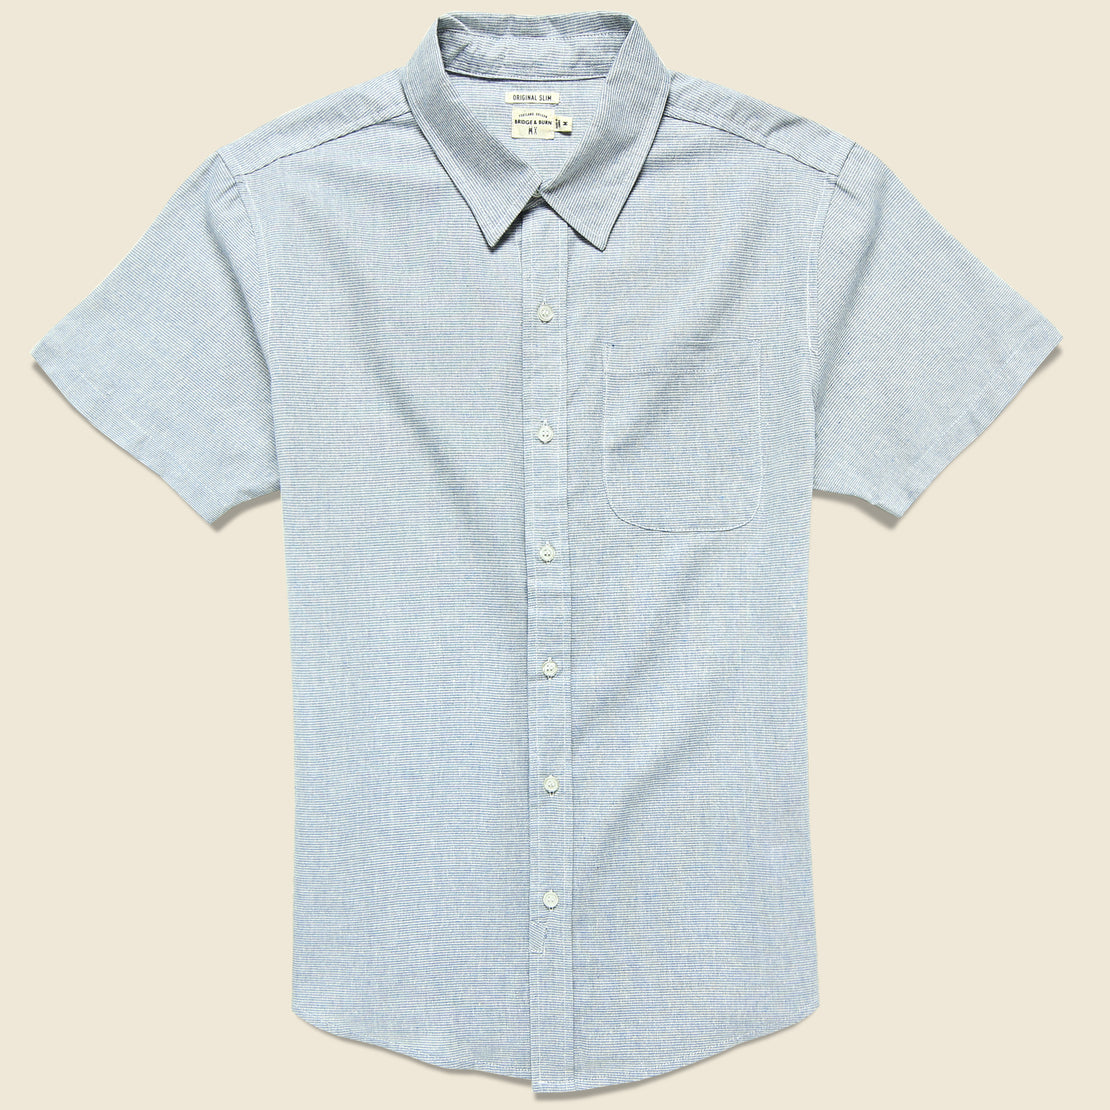 Bridge & Burn Harbor Shirt - Light Blue Stripe